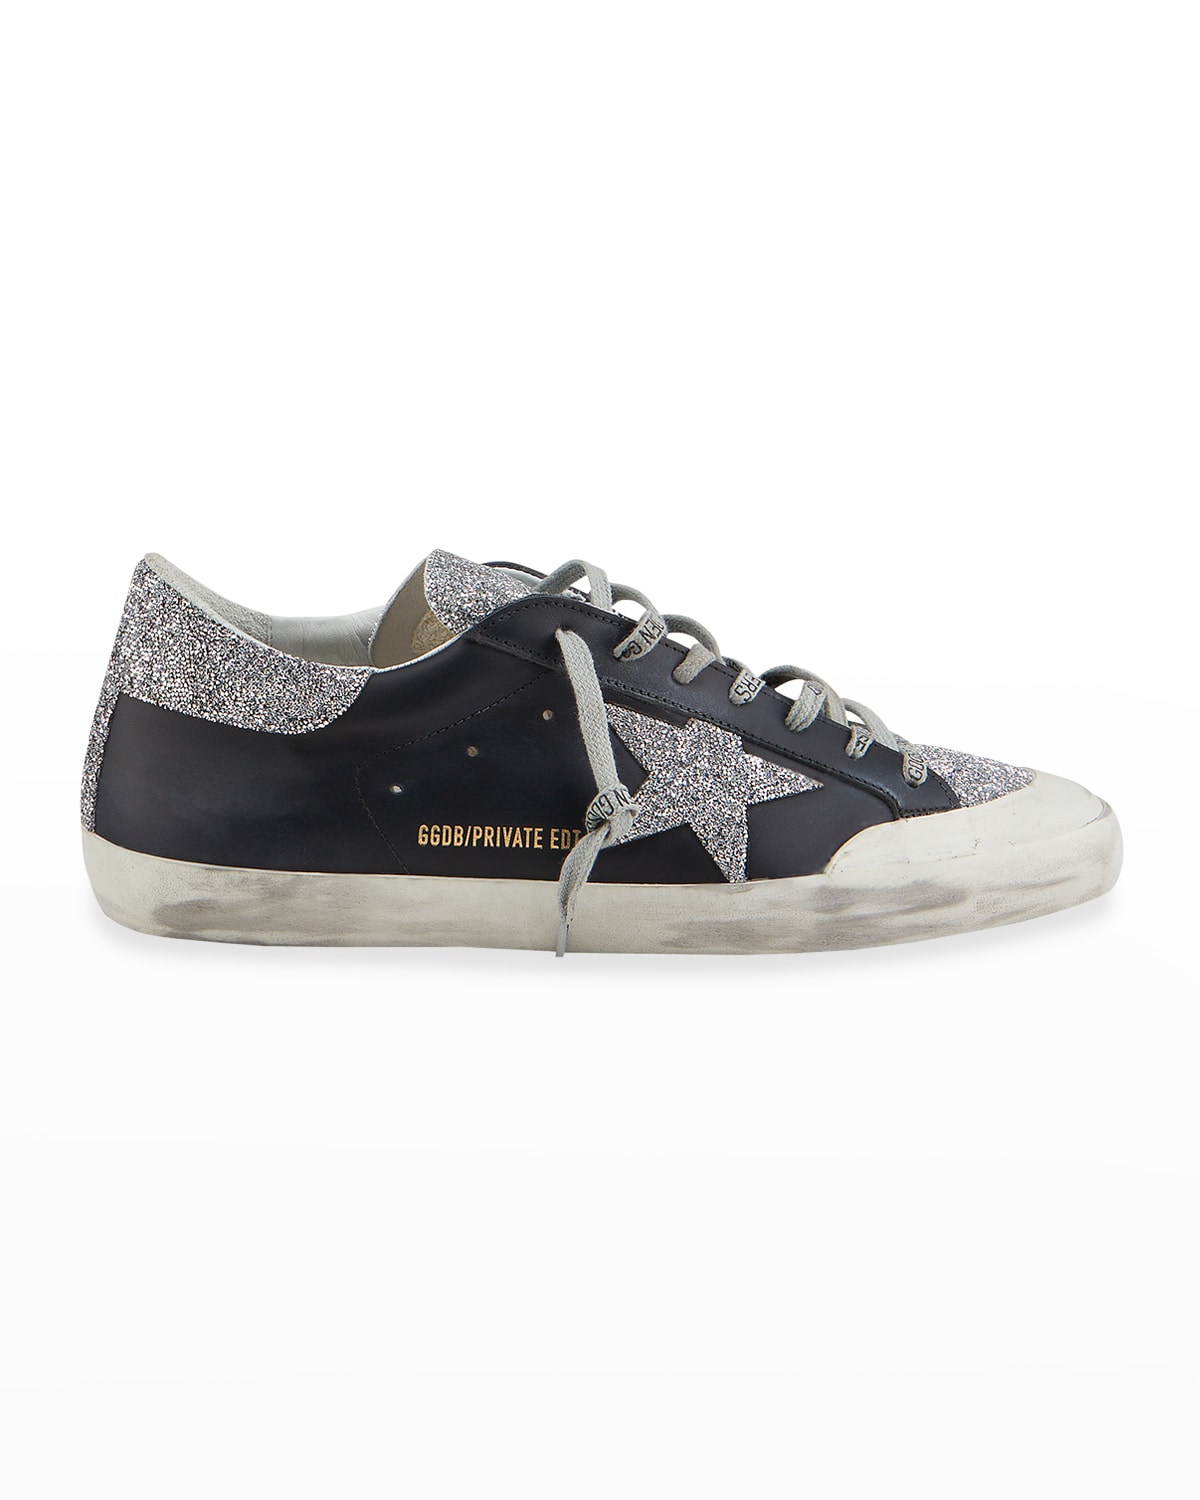 Men's Super Star Crystal Leather Low-Top Sneakers